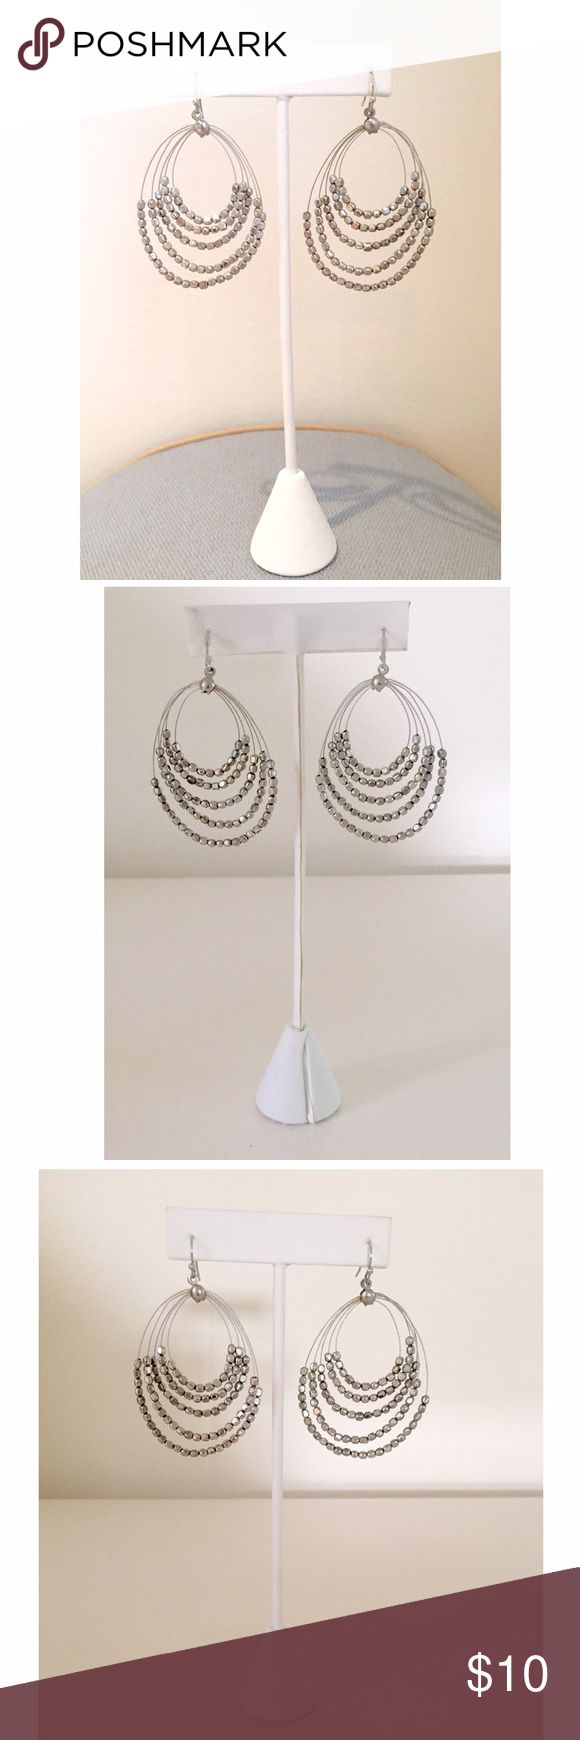 """Silver Grey Nugget Beaded Thin Wire Earrings Simple but beautiful earrings! Purchased at a boutique. Brushed silver grey tone nuggets slide along 5 tiers of thin wire. Any perceived asymmetry to the earrings can be easily adjusted w/ the thin wire. These were in storage. Approximately 1-5/8"""" at its widest point and overall drop length is approx. 2-3/8"""". Versatile set of earrings which can be day or night! Jewelry Earrings"""